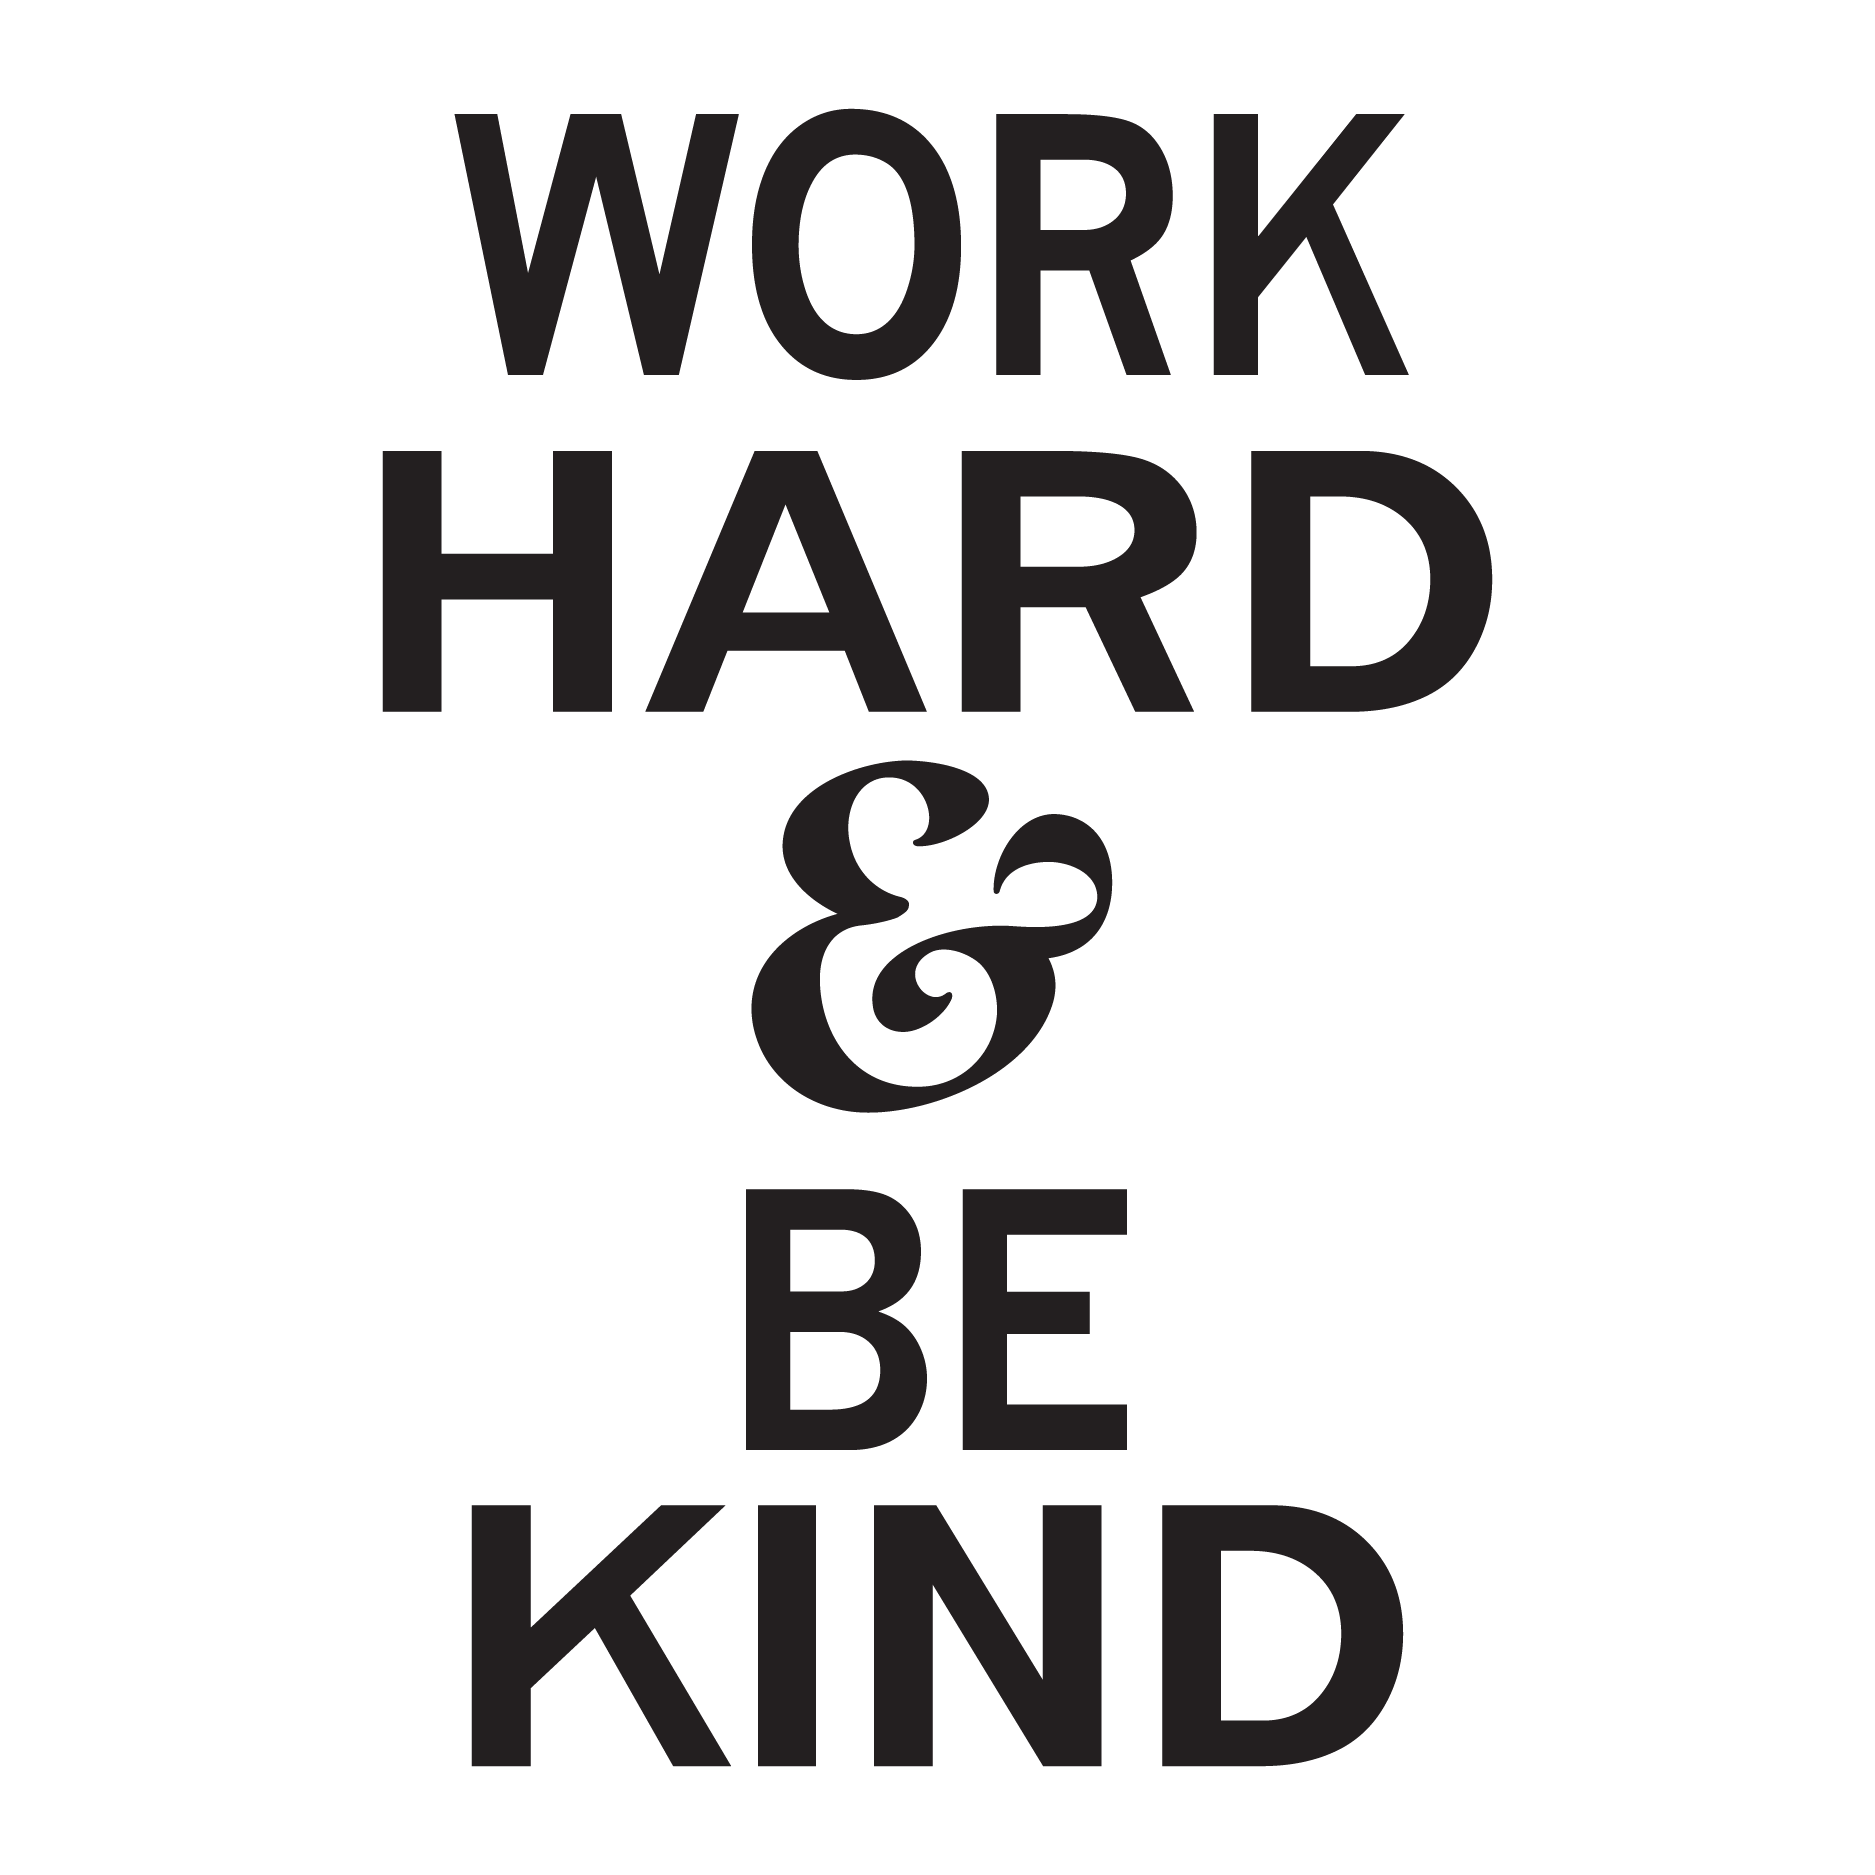 Work Hard Amp Be Kind Wall Quotes Decal Wallquotes Com